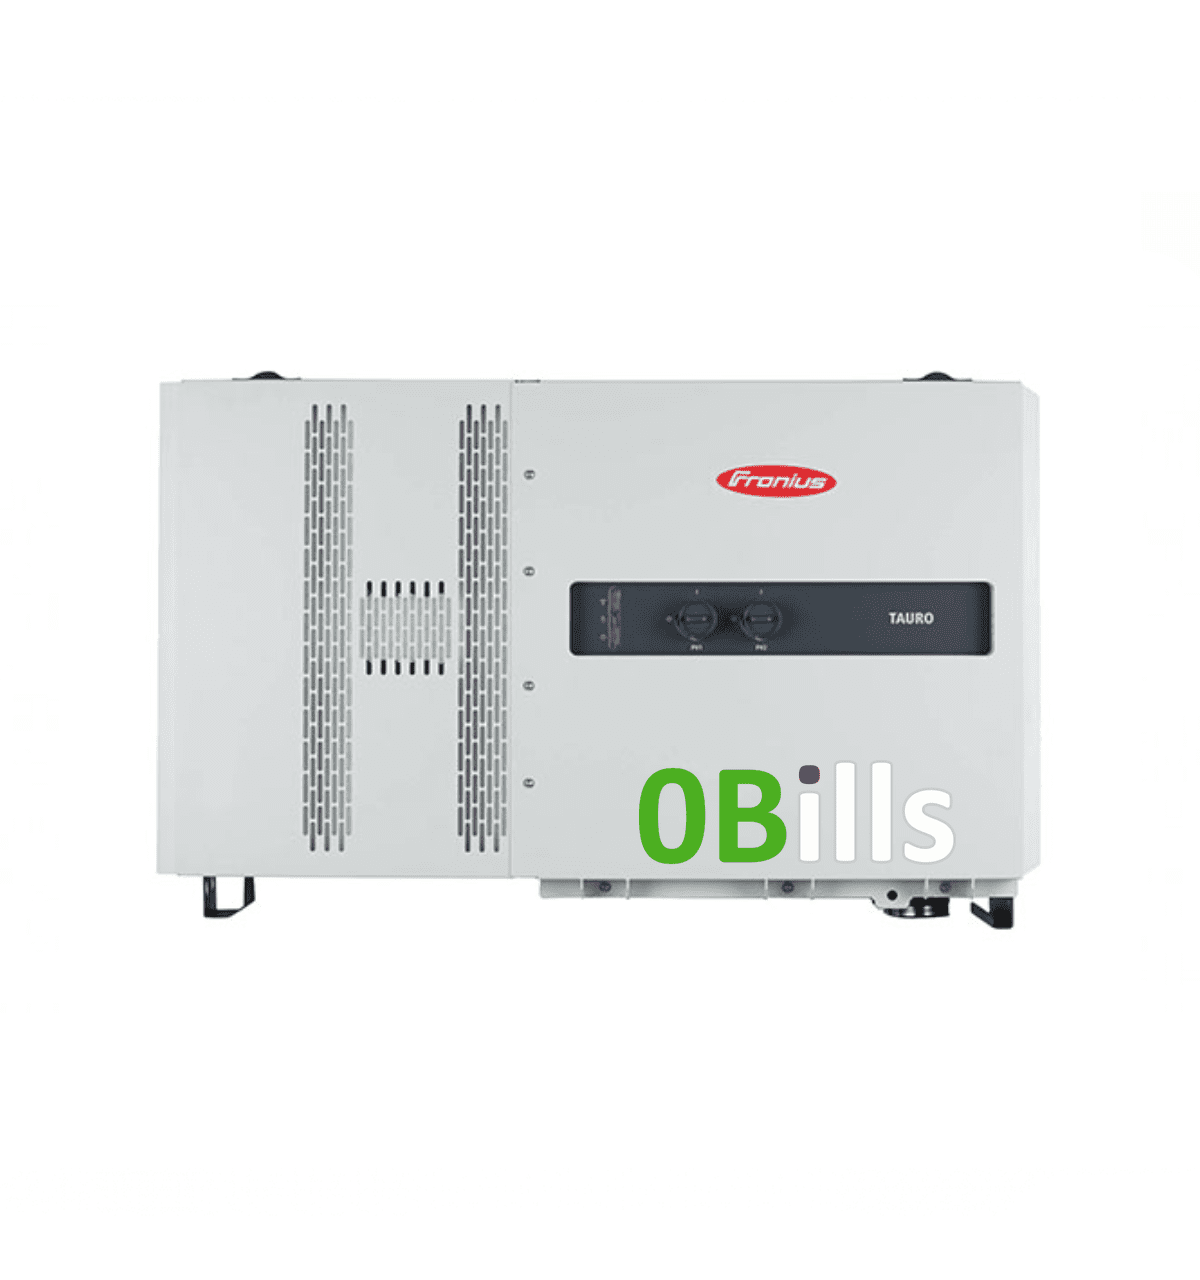 Buy Fronius TAURO ECO 50-3-P 50kW Grid Tie Solar Inverter@ DIY Solar Energy Store for Sale